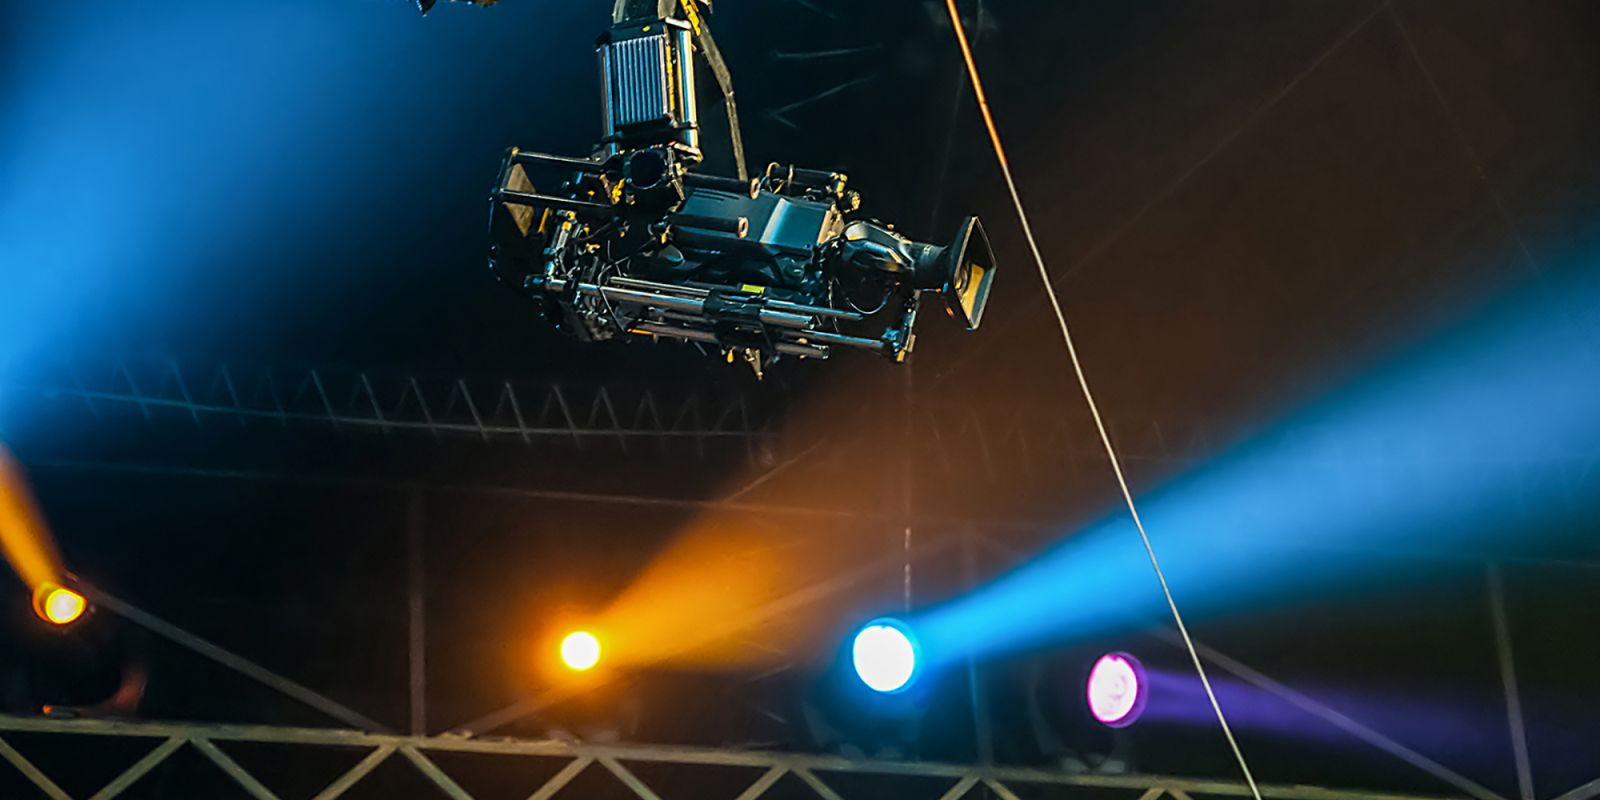 A picture of a drone in the air, with a stage set in the back ground, on the event video production page.